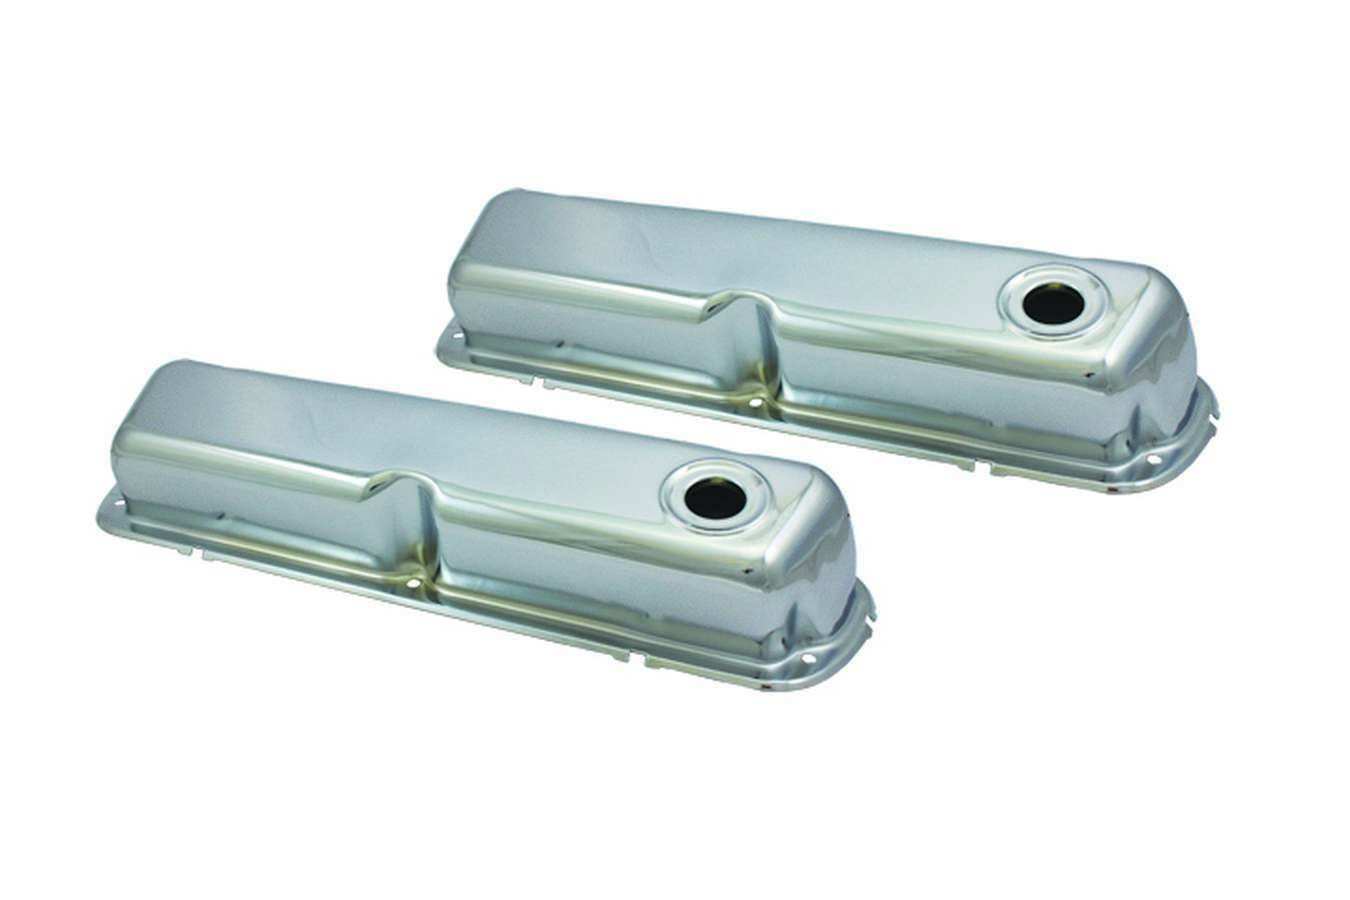 Specialty Products 8331 Valve Cover, Tall, Baffled, Breather Holes, Steel, Chrome, Small Block Ford, Pair